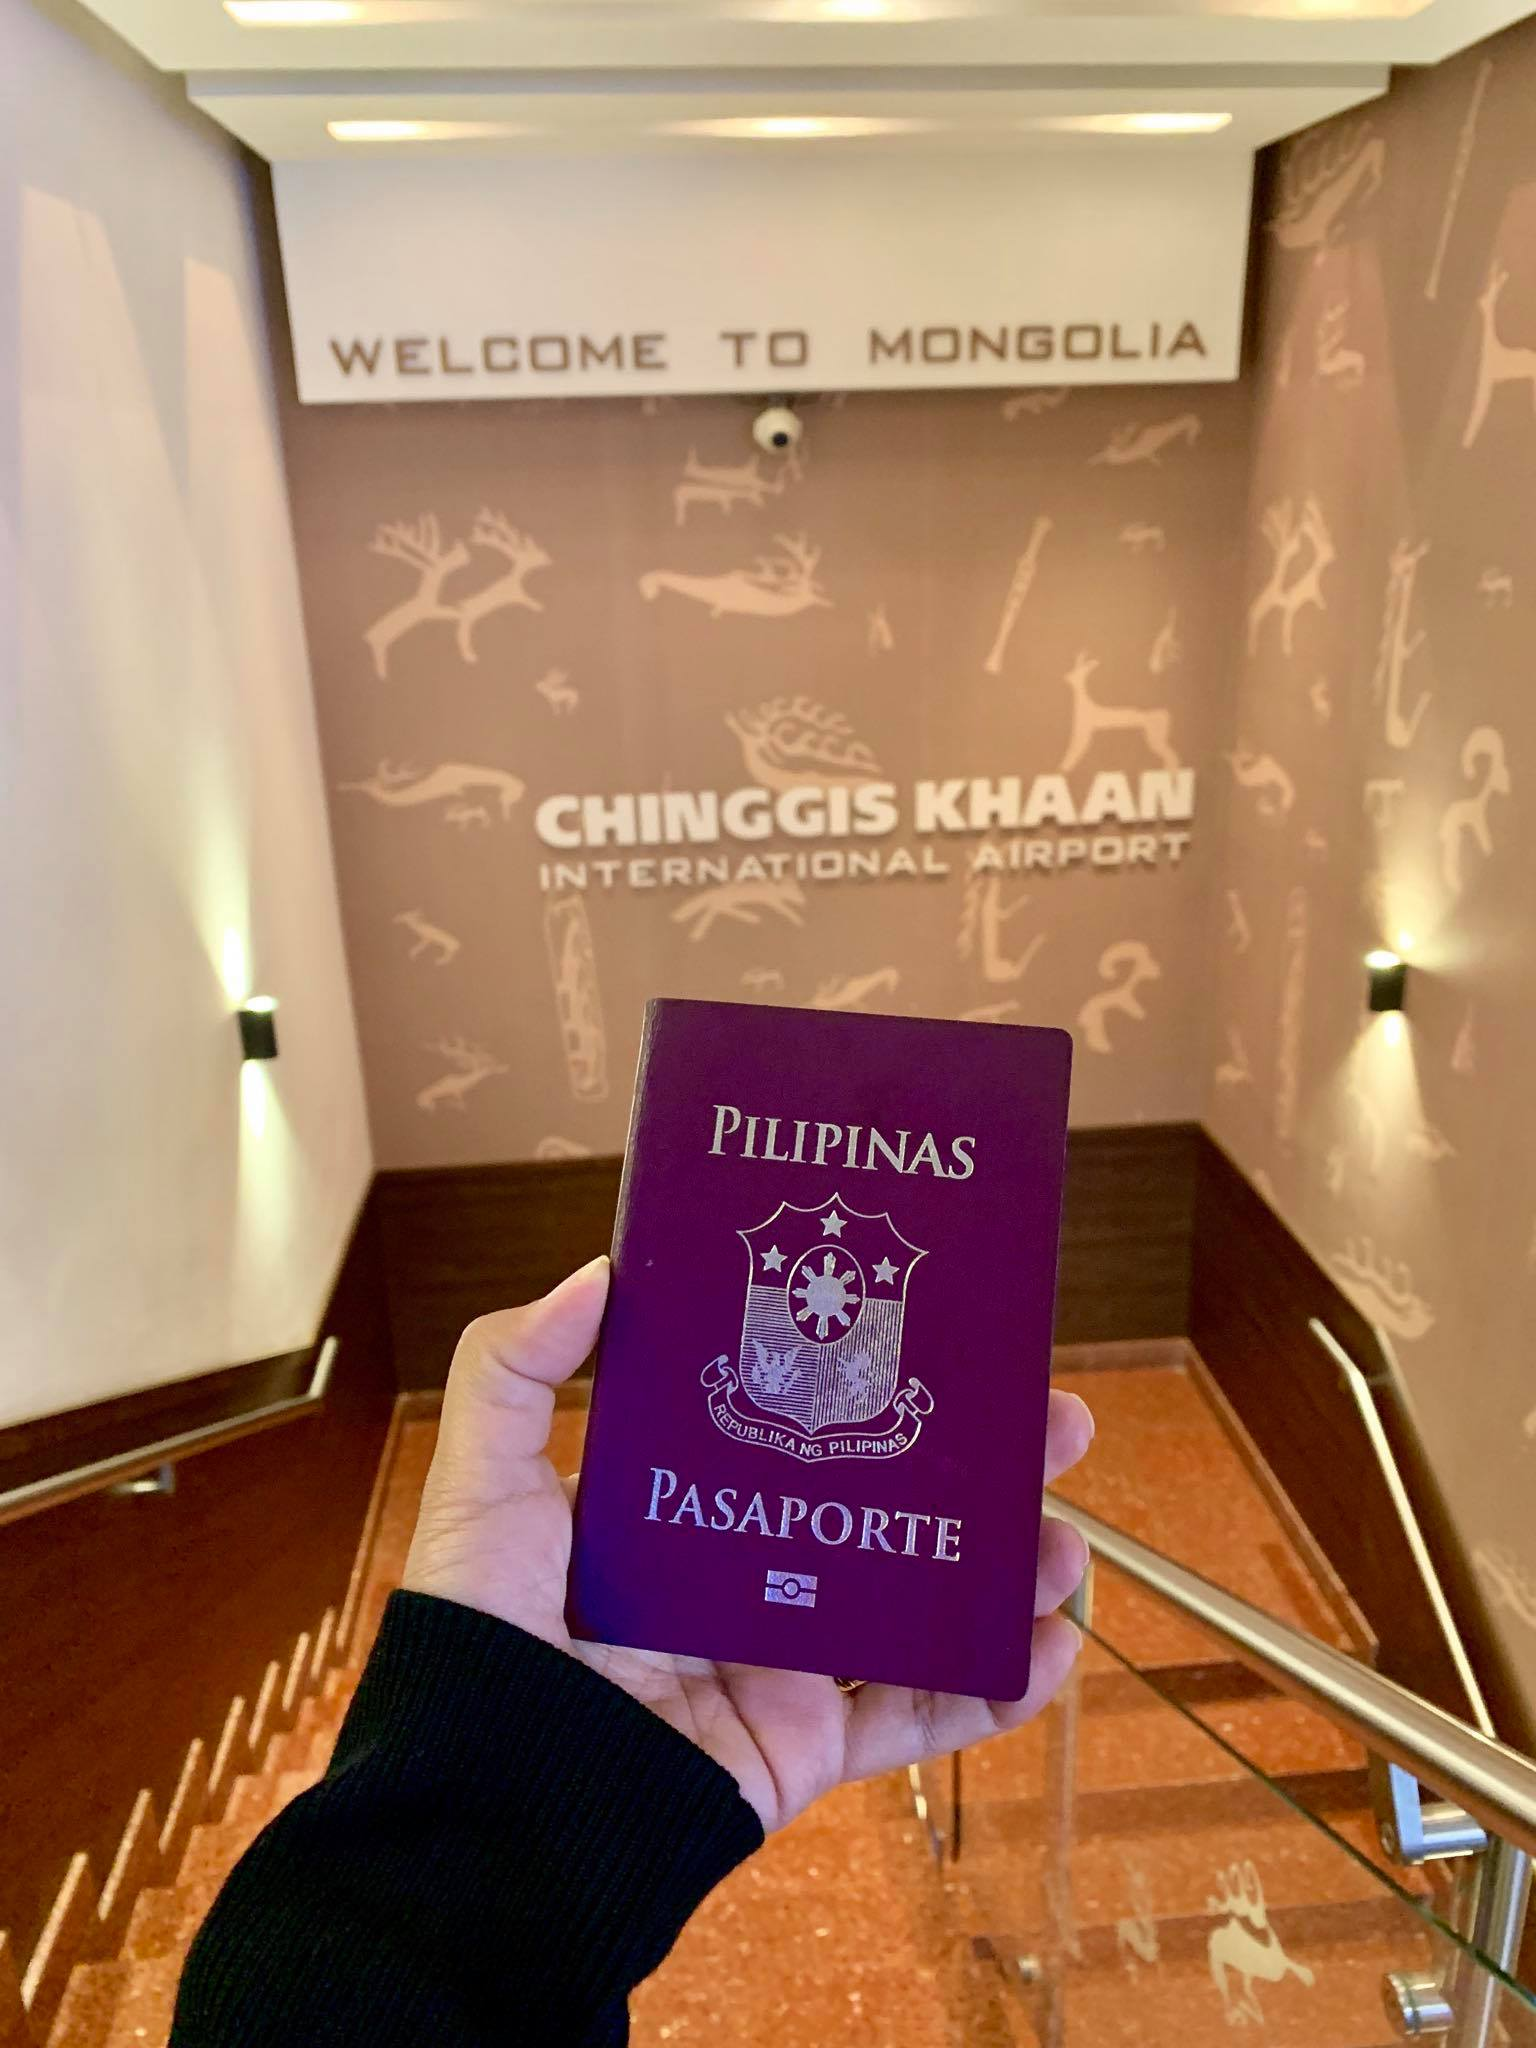 Kach Solo Travels in 2019 Hello from MONGOLIA - my 130th country40.jpg